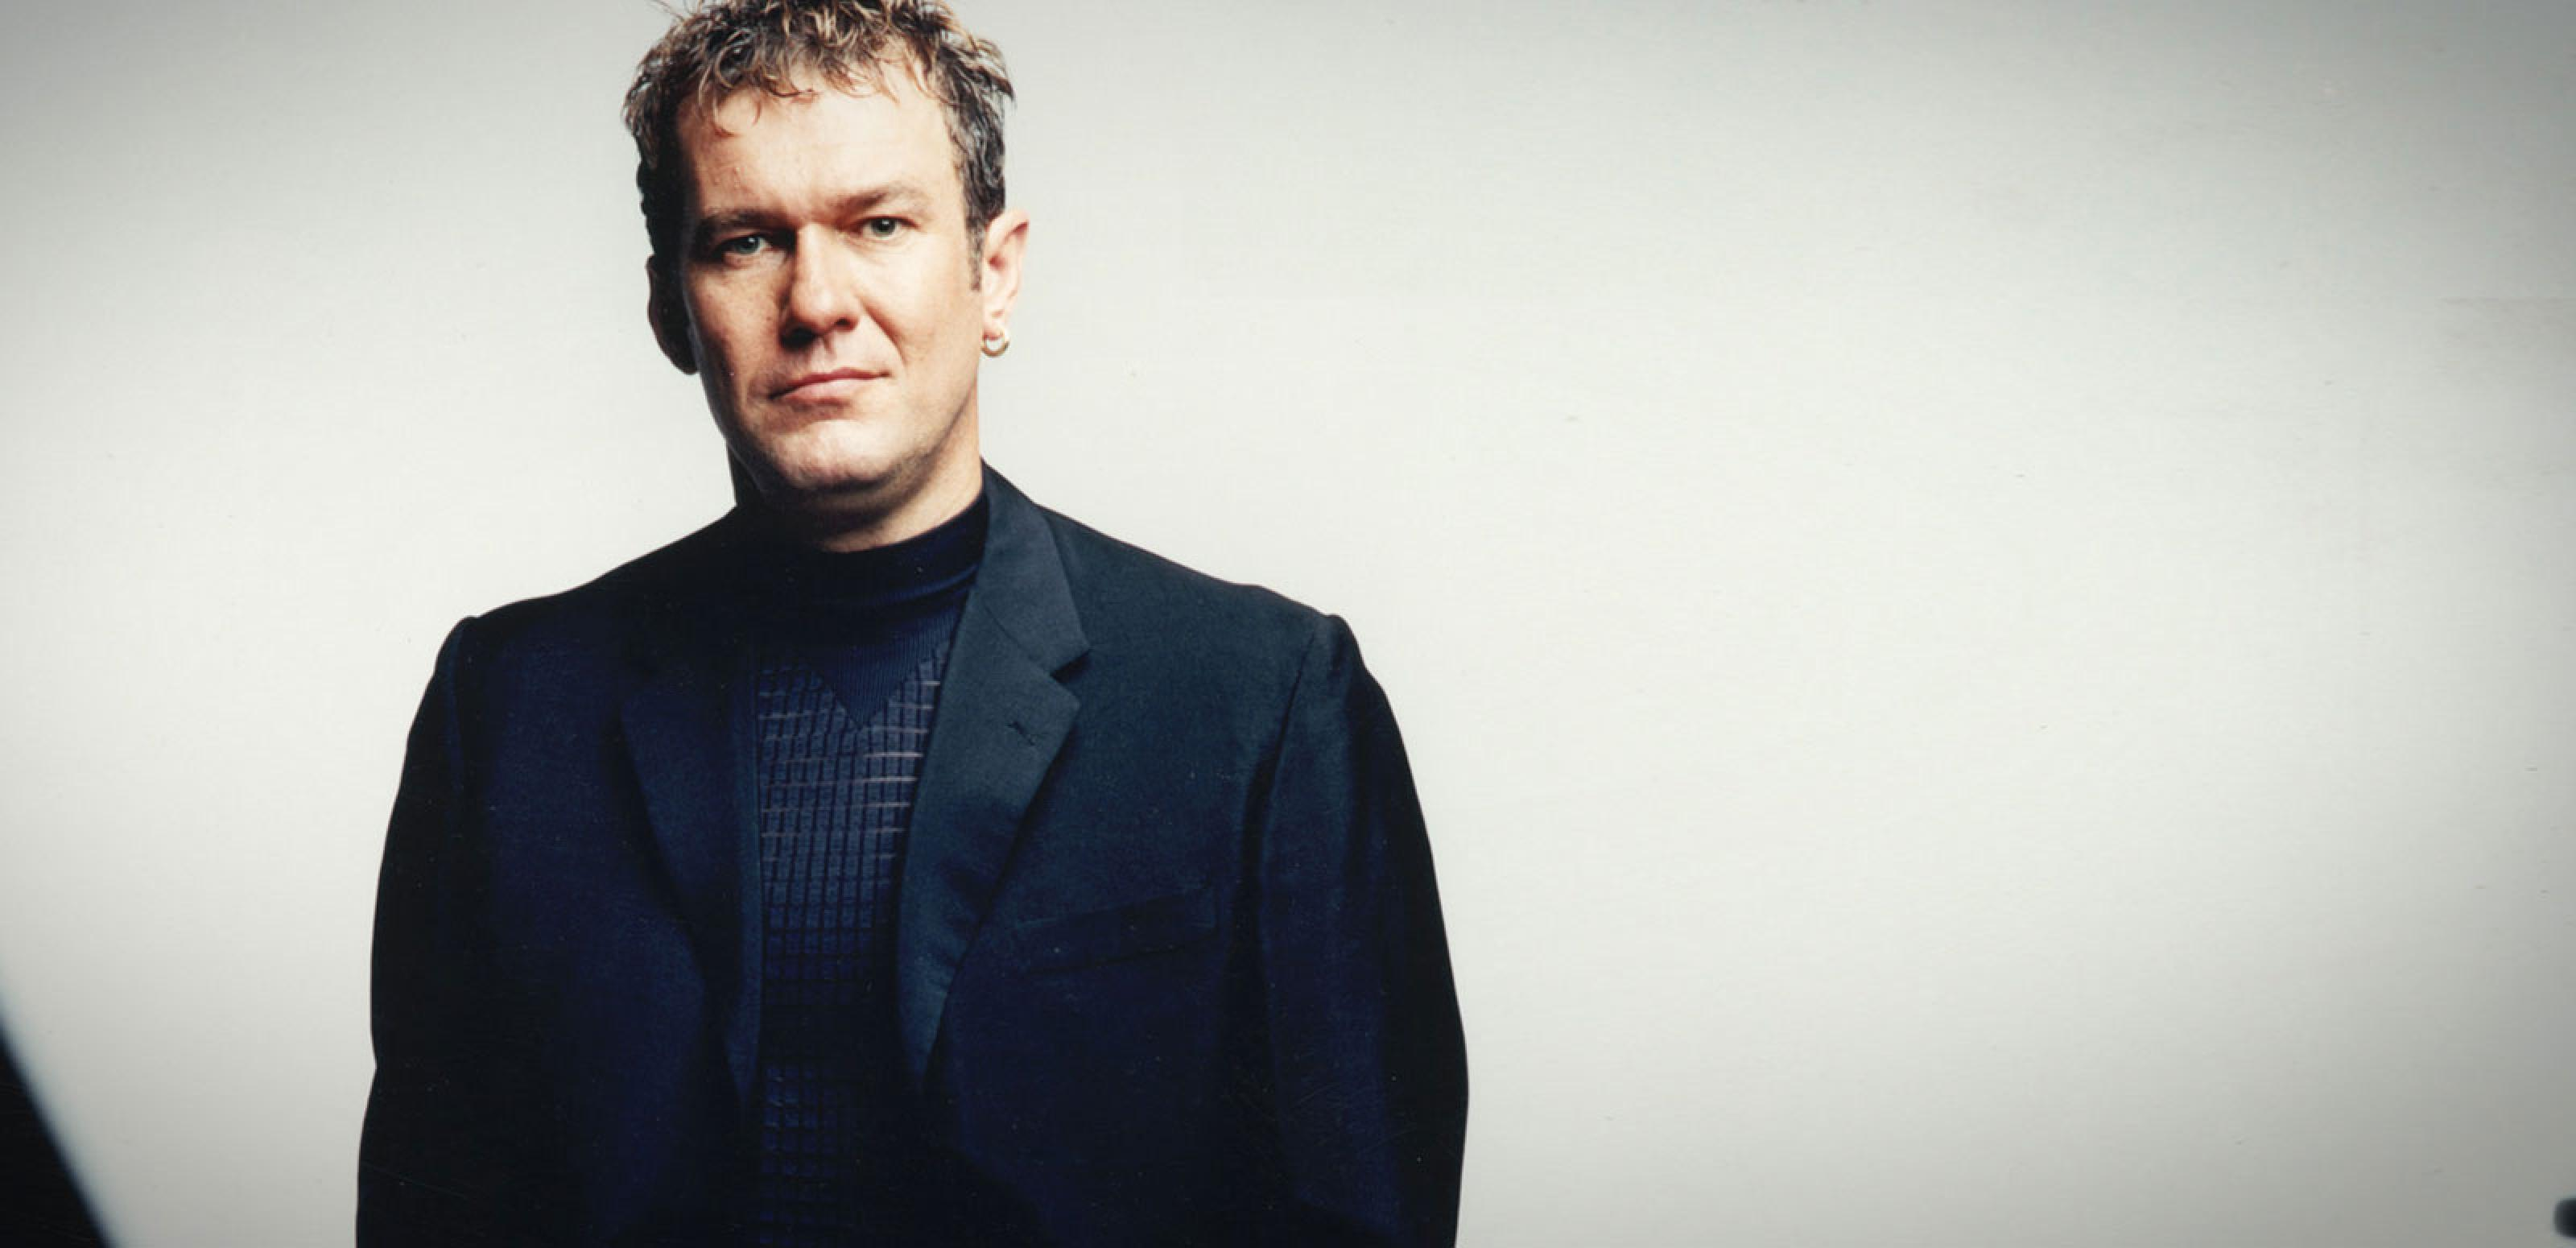 Jimmy Barnes wearing a black suit and shirt and looking directly at camera. Photographed from waist up.